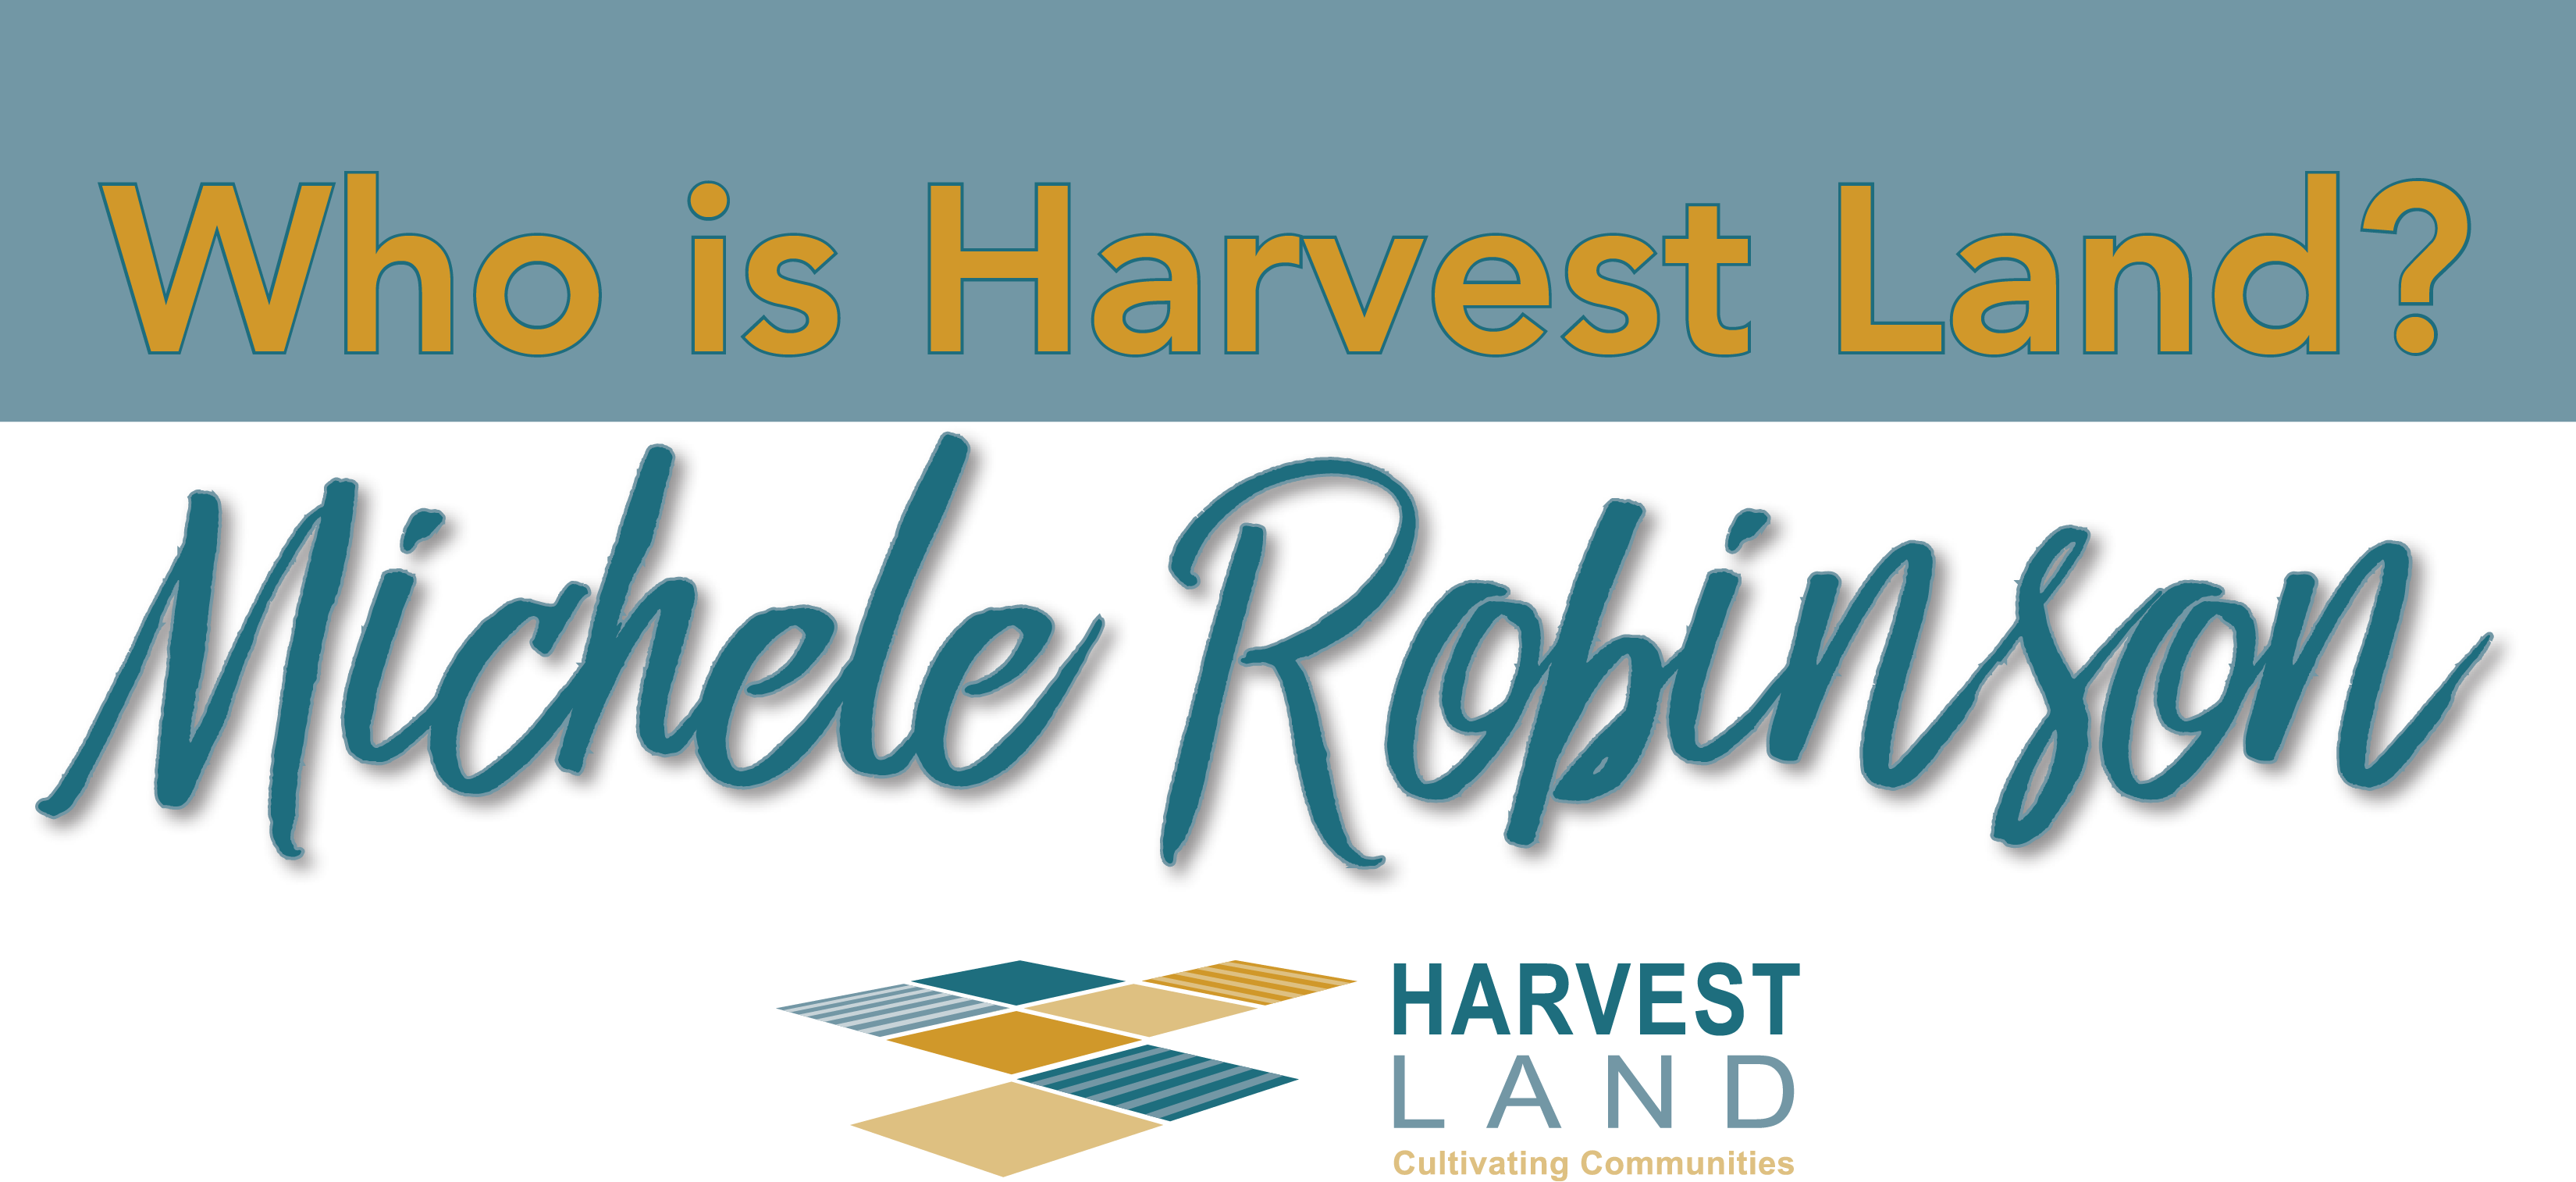 who is harvest land_Robinson